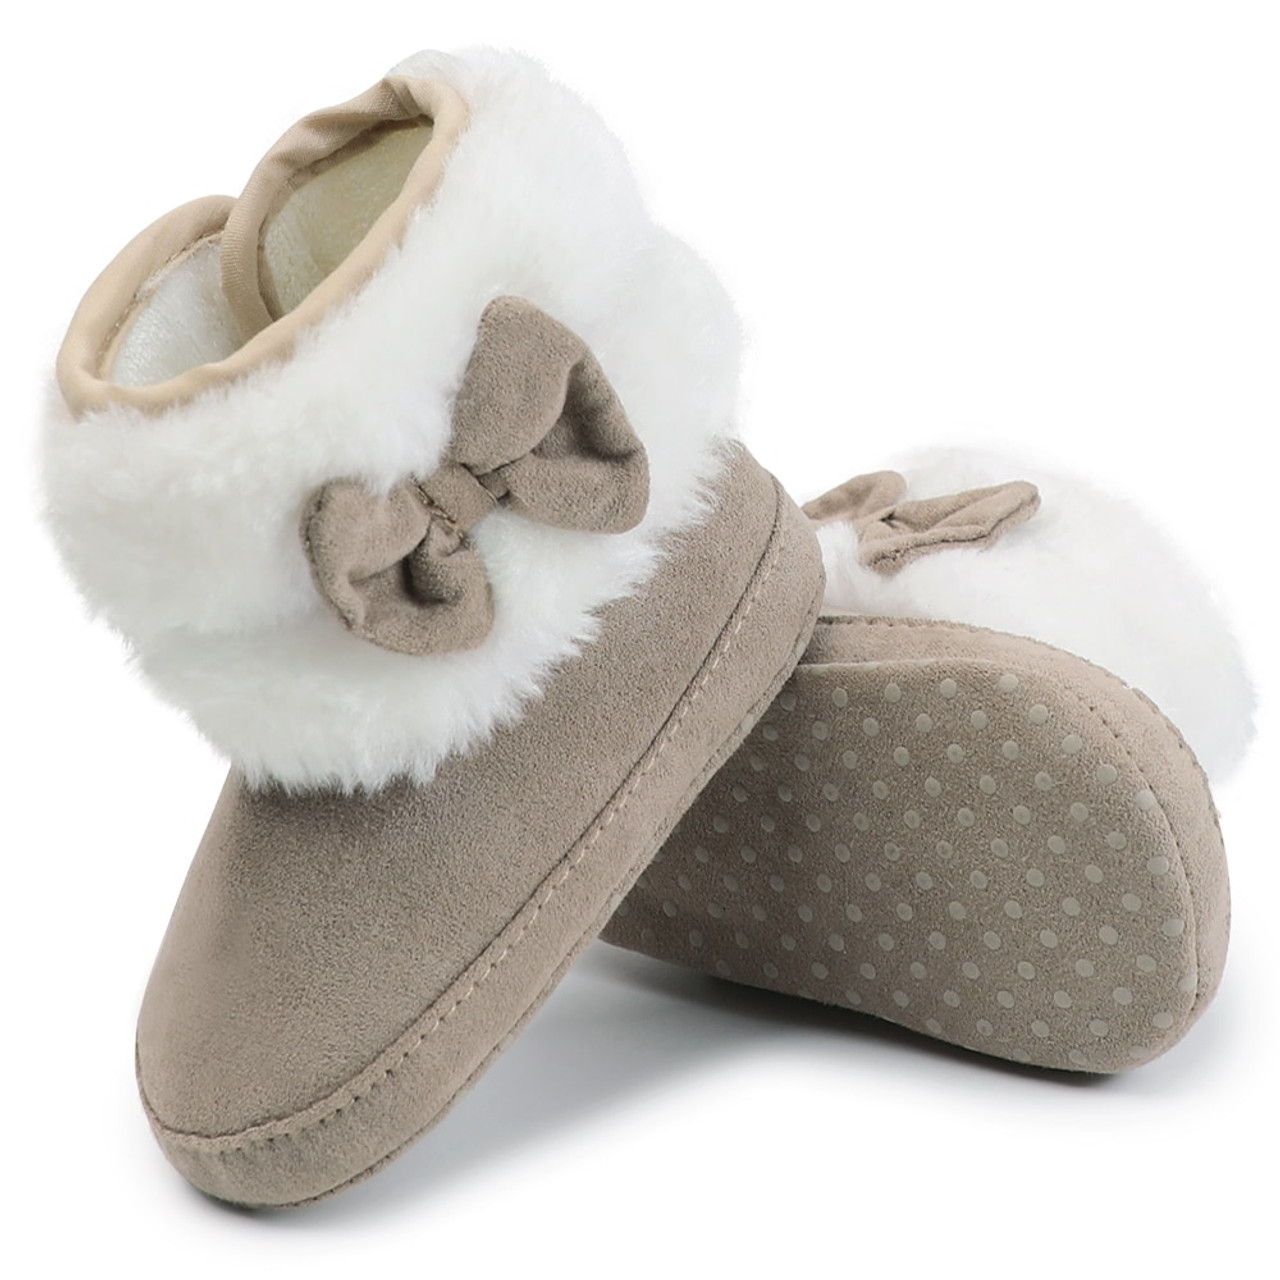 ea48109ba586c Baby Toddler Shoes Babies Winter Warm Booties Faux Fleece Anti-Slip Toddler  Newborn Baby Shoes Bow Crib Shoes Snow Boots